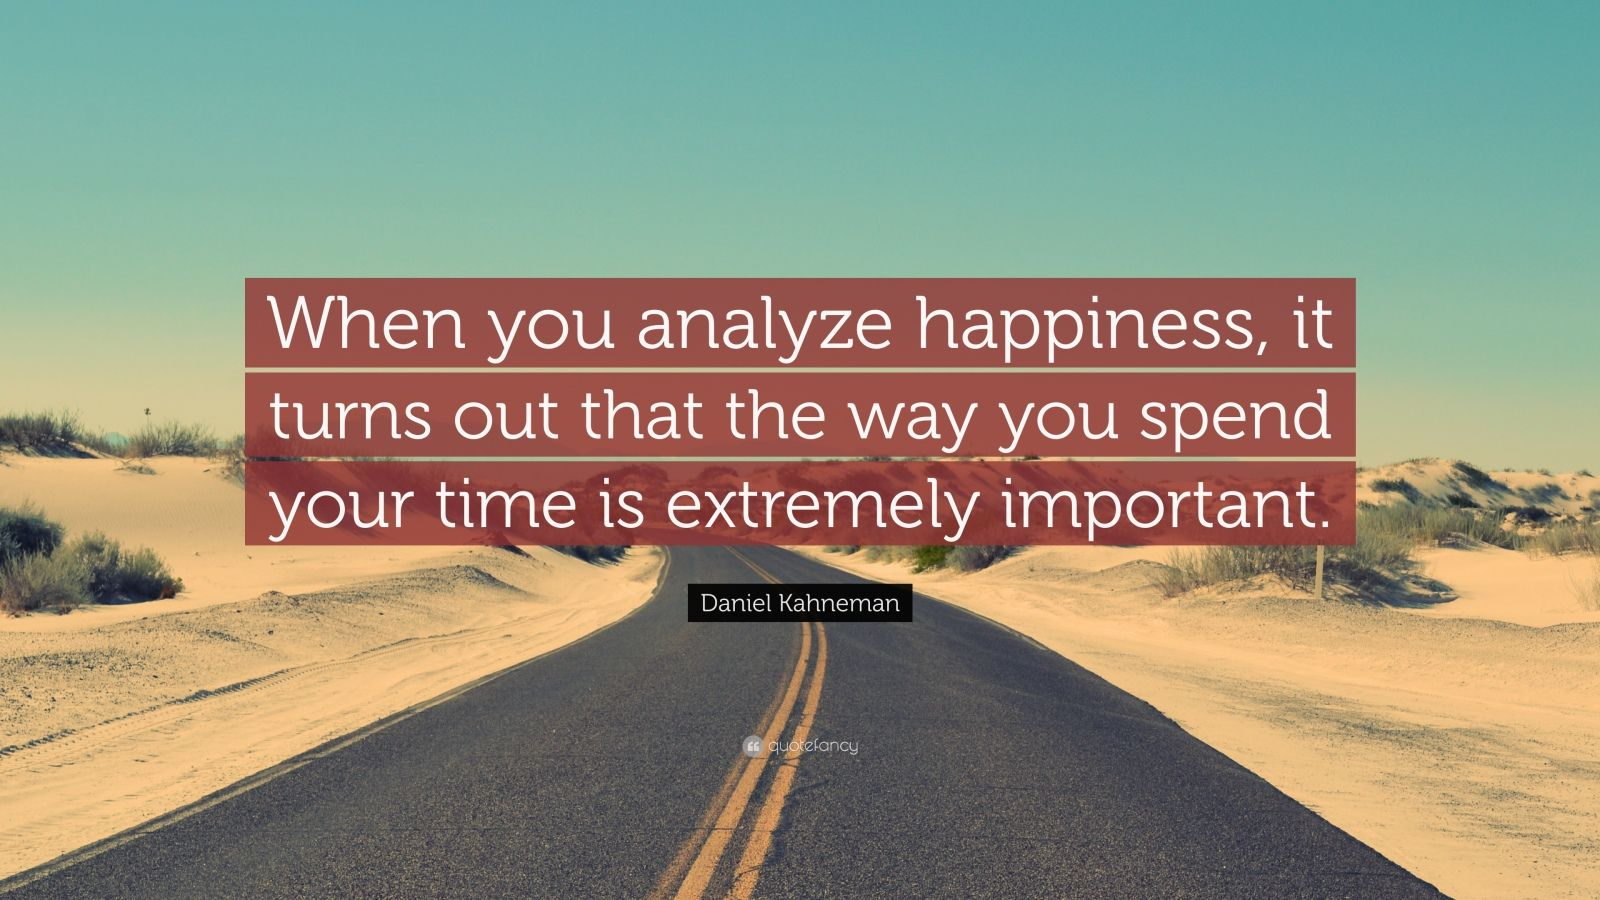 """Daniel Kahneman Quote: """"When you analyze happiness, it turns out that the way you spend your time is extremely important."""""""